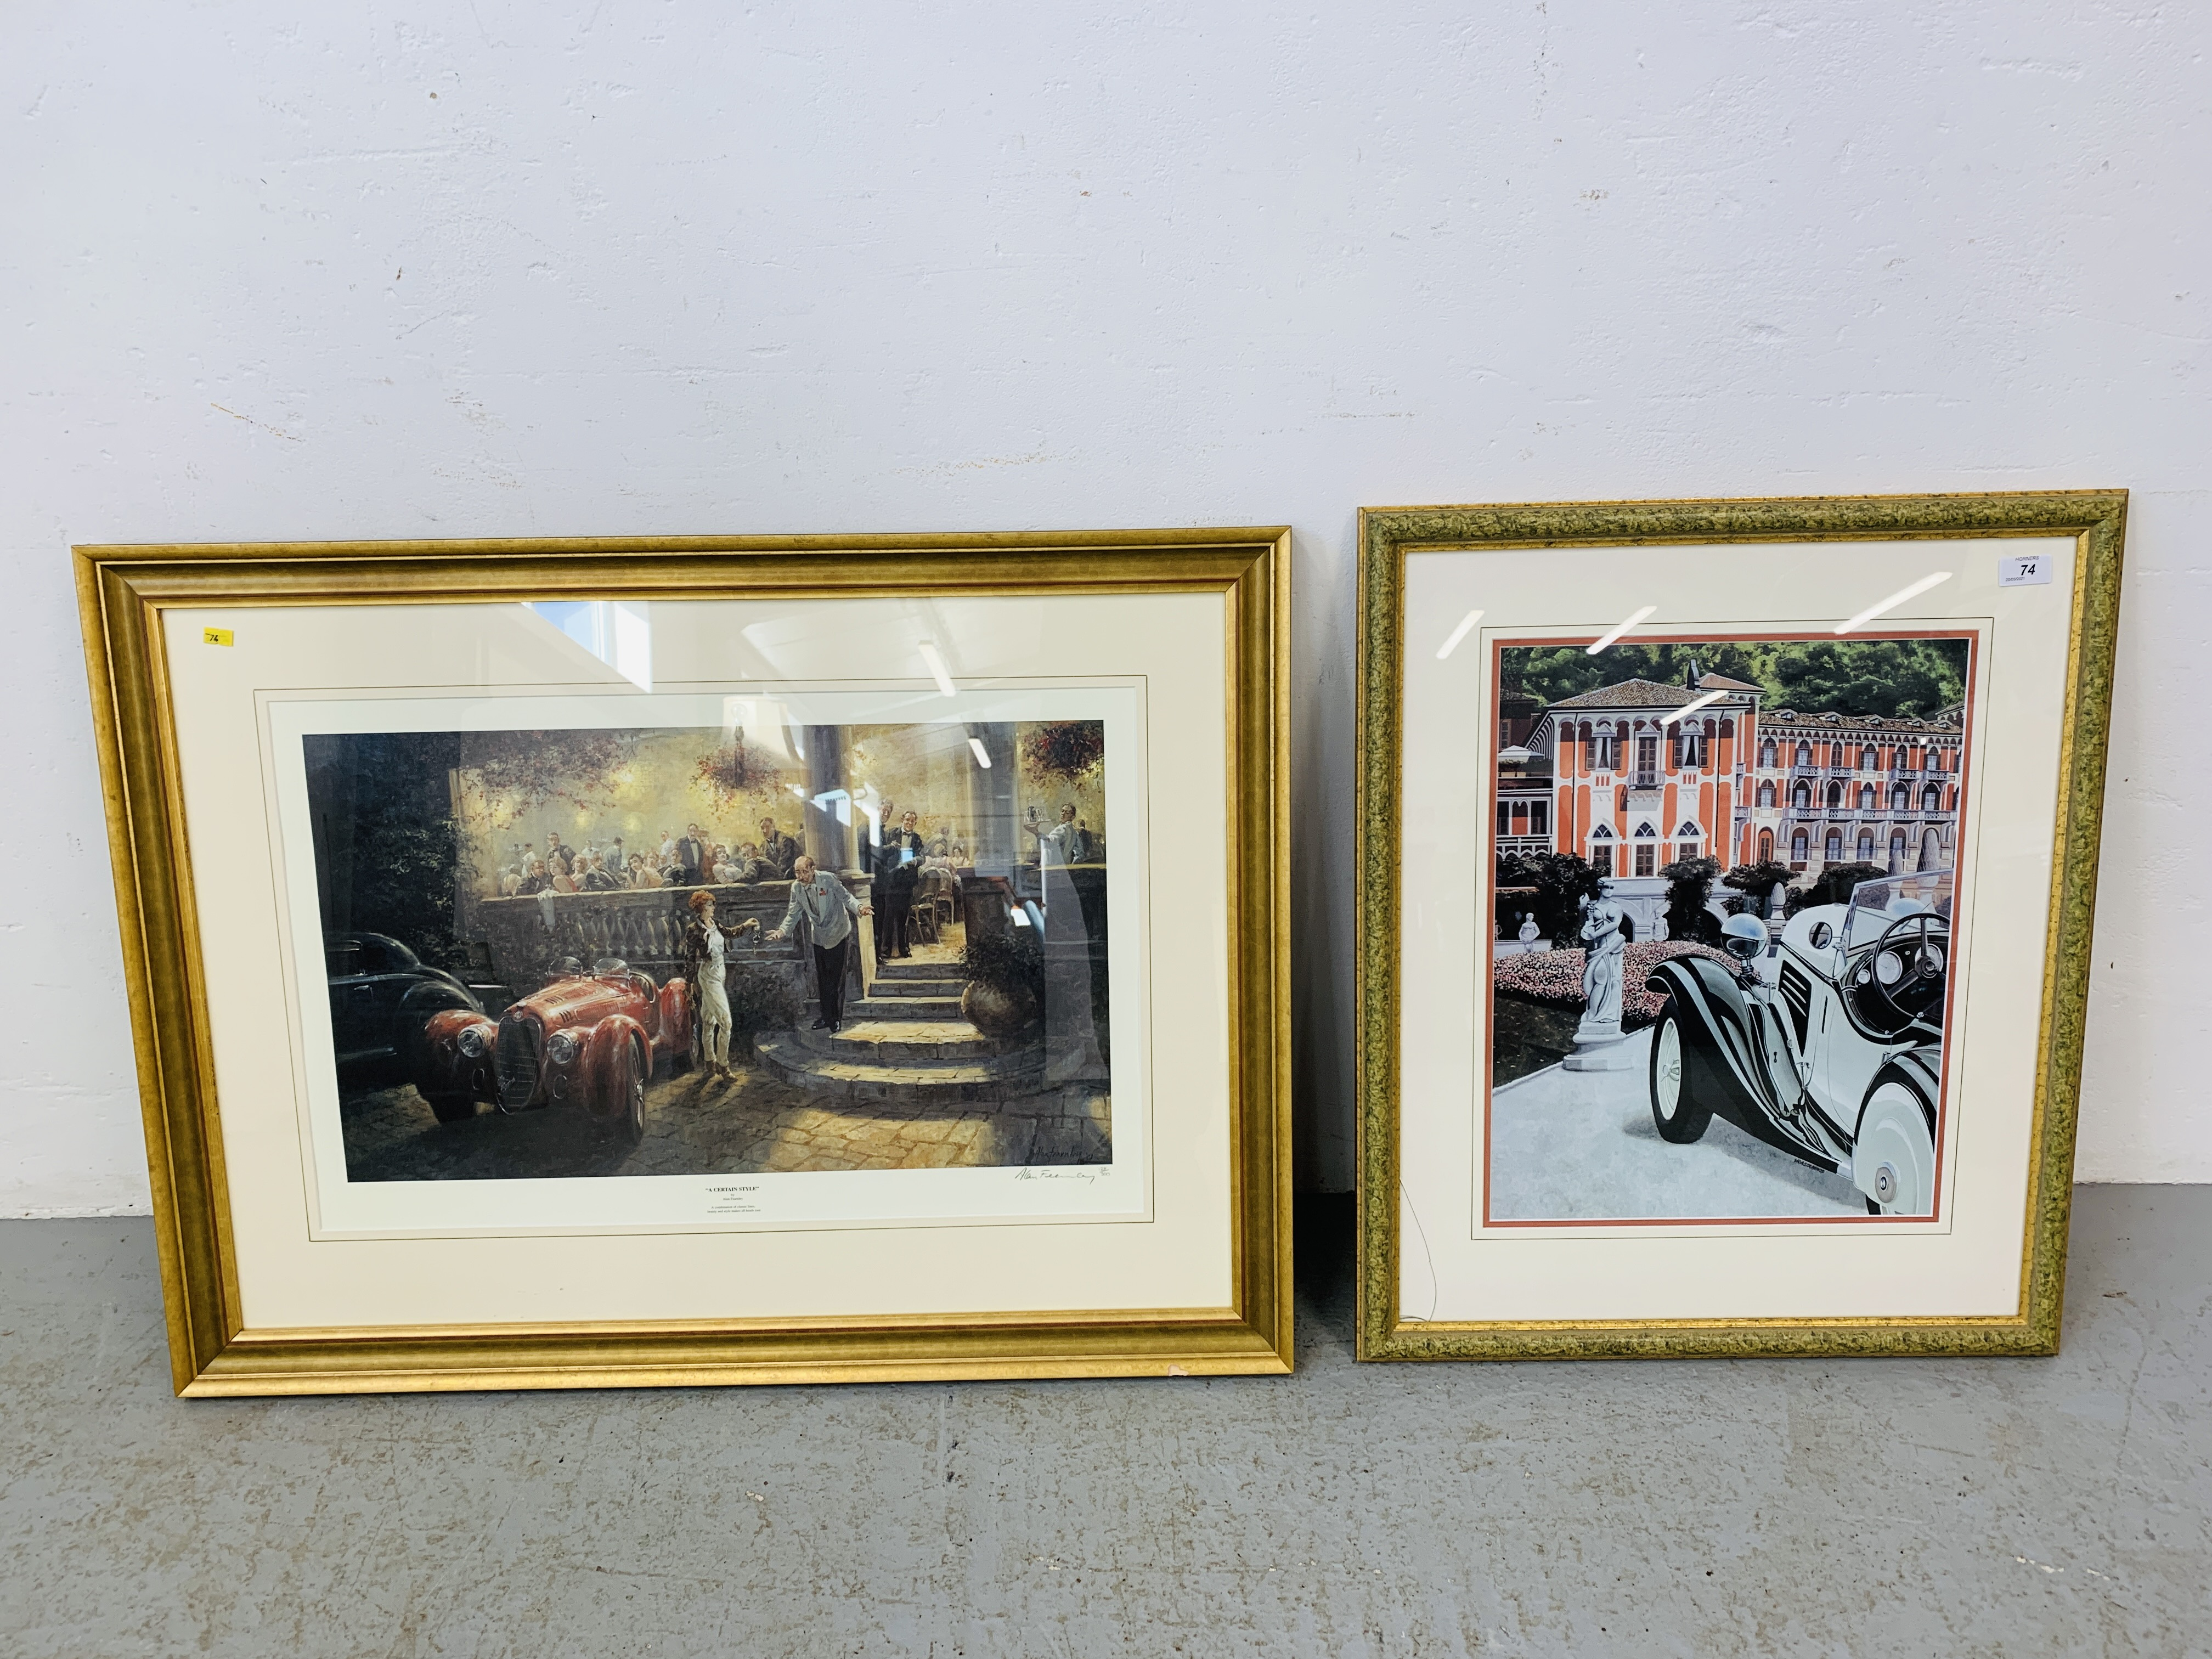 """A FRAMED AND MOUNTED ALAN FEARNLEY LTD EDITION PRINT """"A CERTAIN STYLE"""" 128/300 35."""